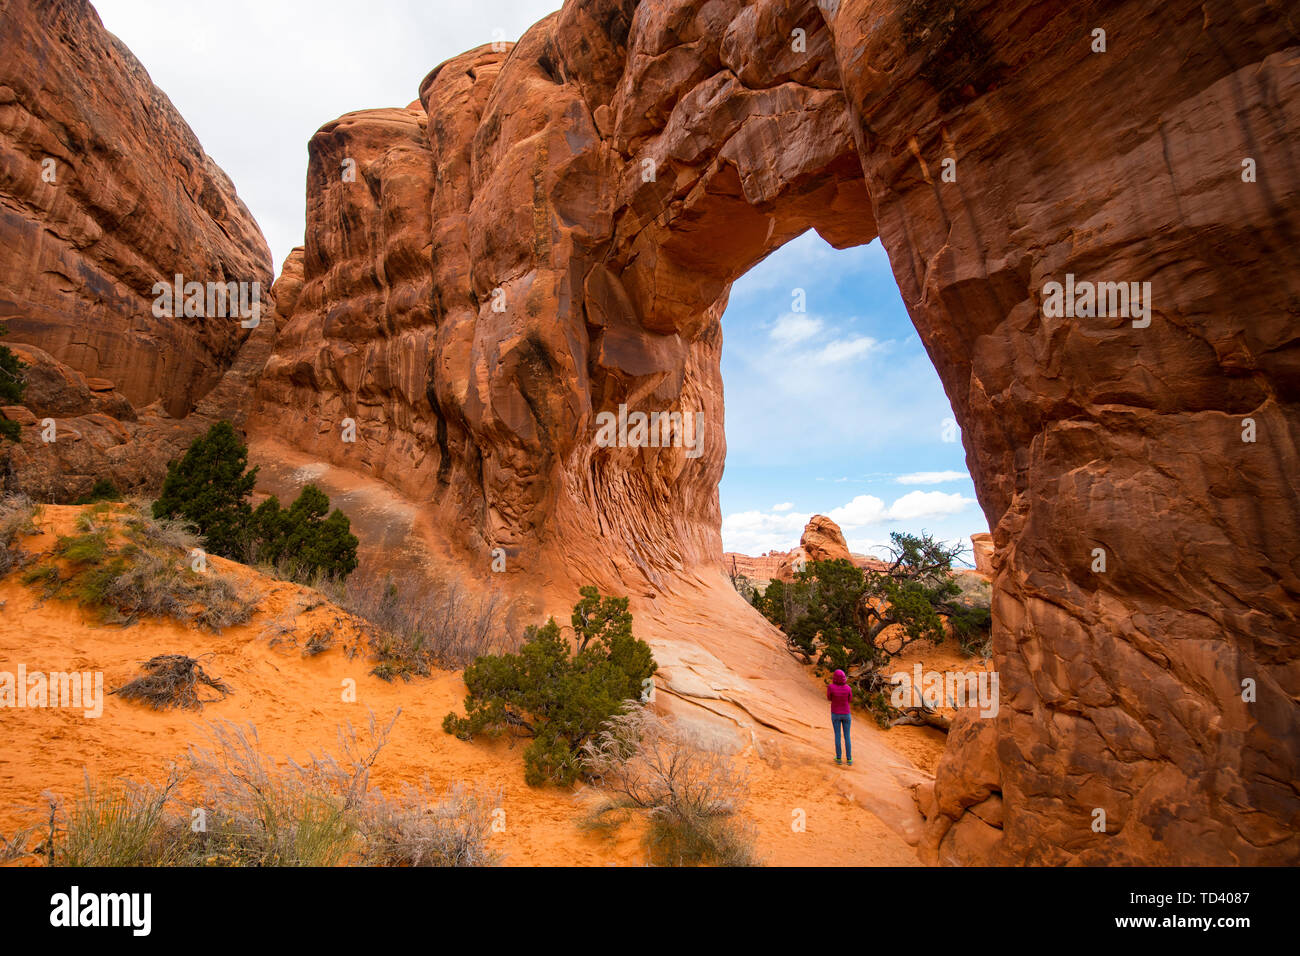 Arches National Park, Moab, Utah, United States of America, North America - Stock Image